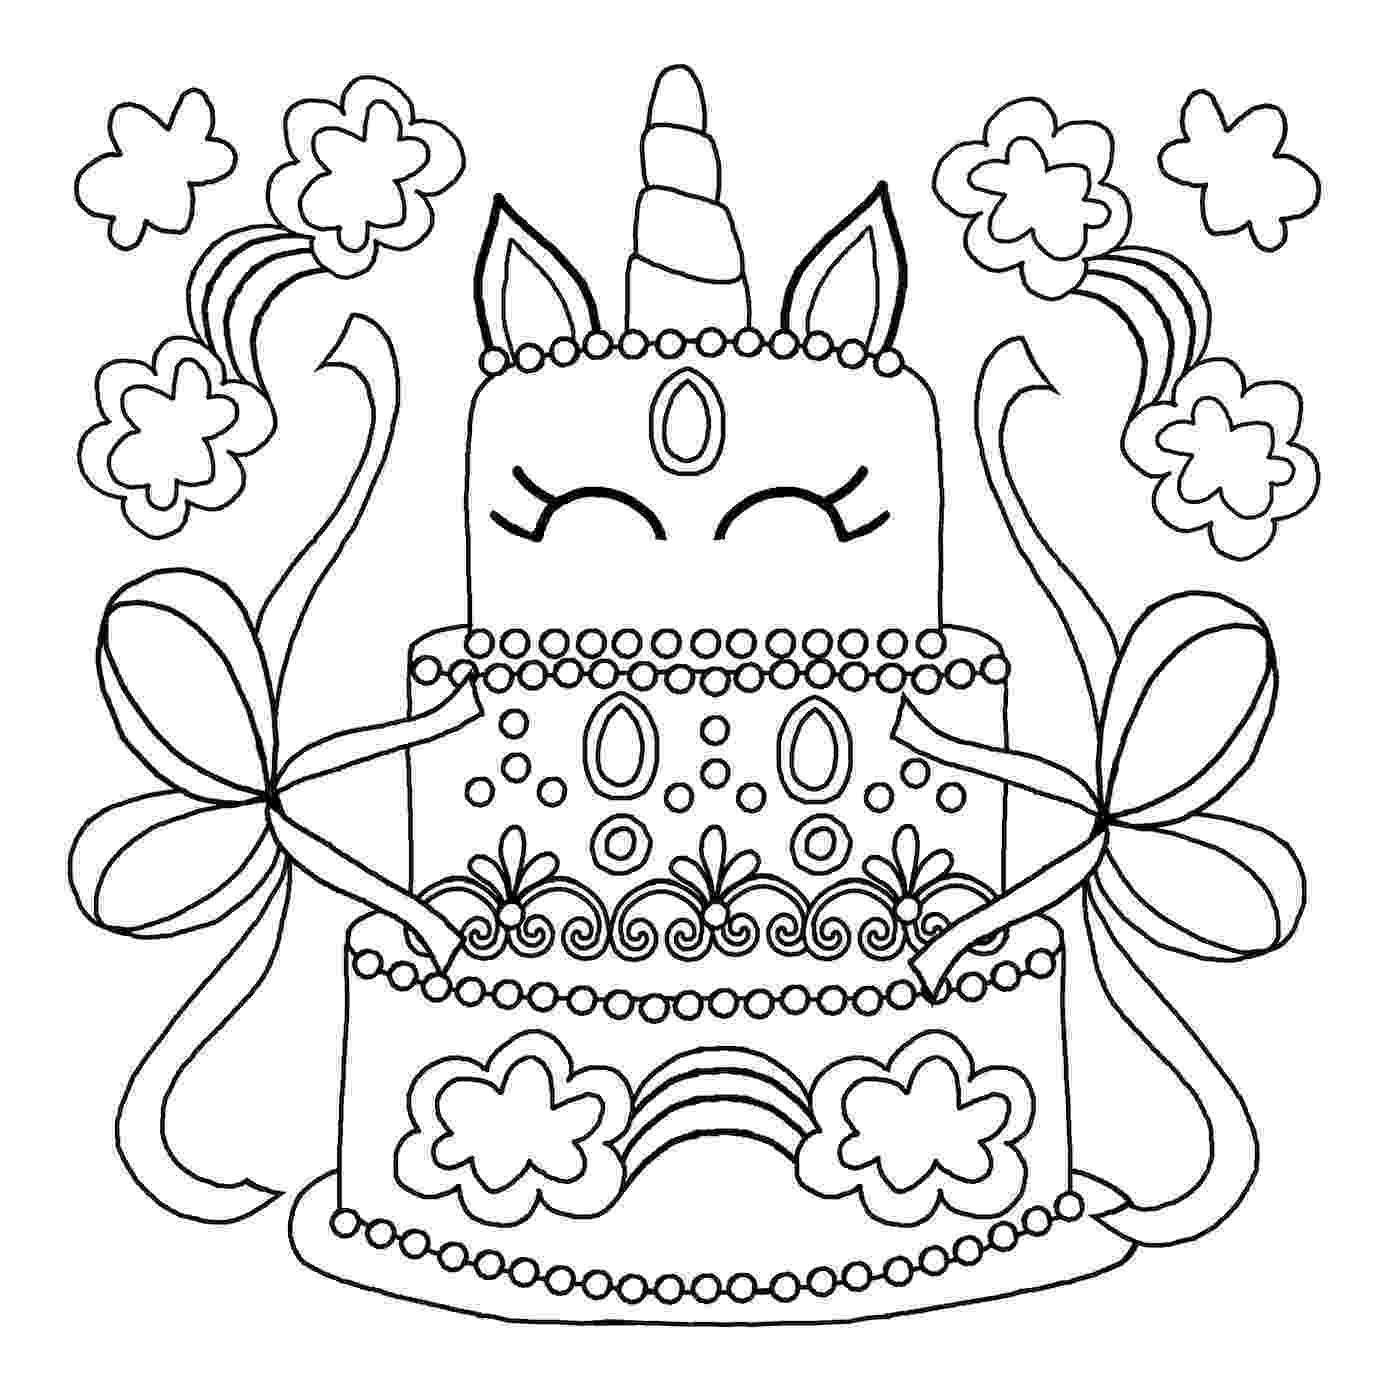 unicorn coloring pages for girls unicorn coloring pages to download and print for free unicorn pages coloring girls for